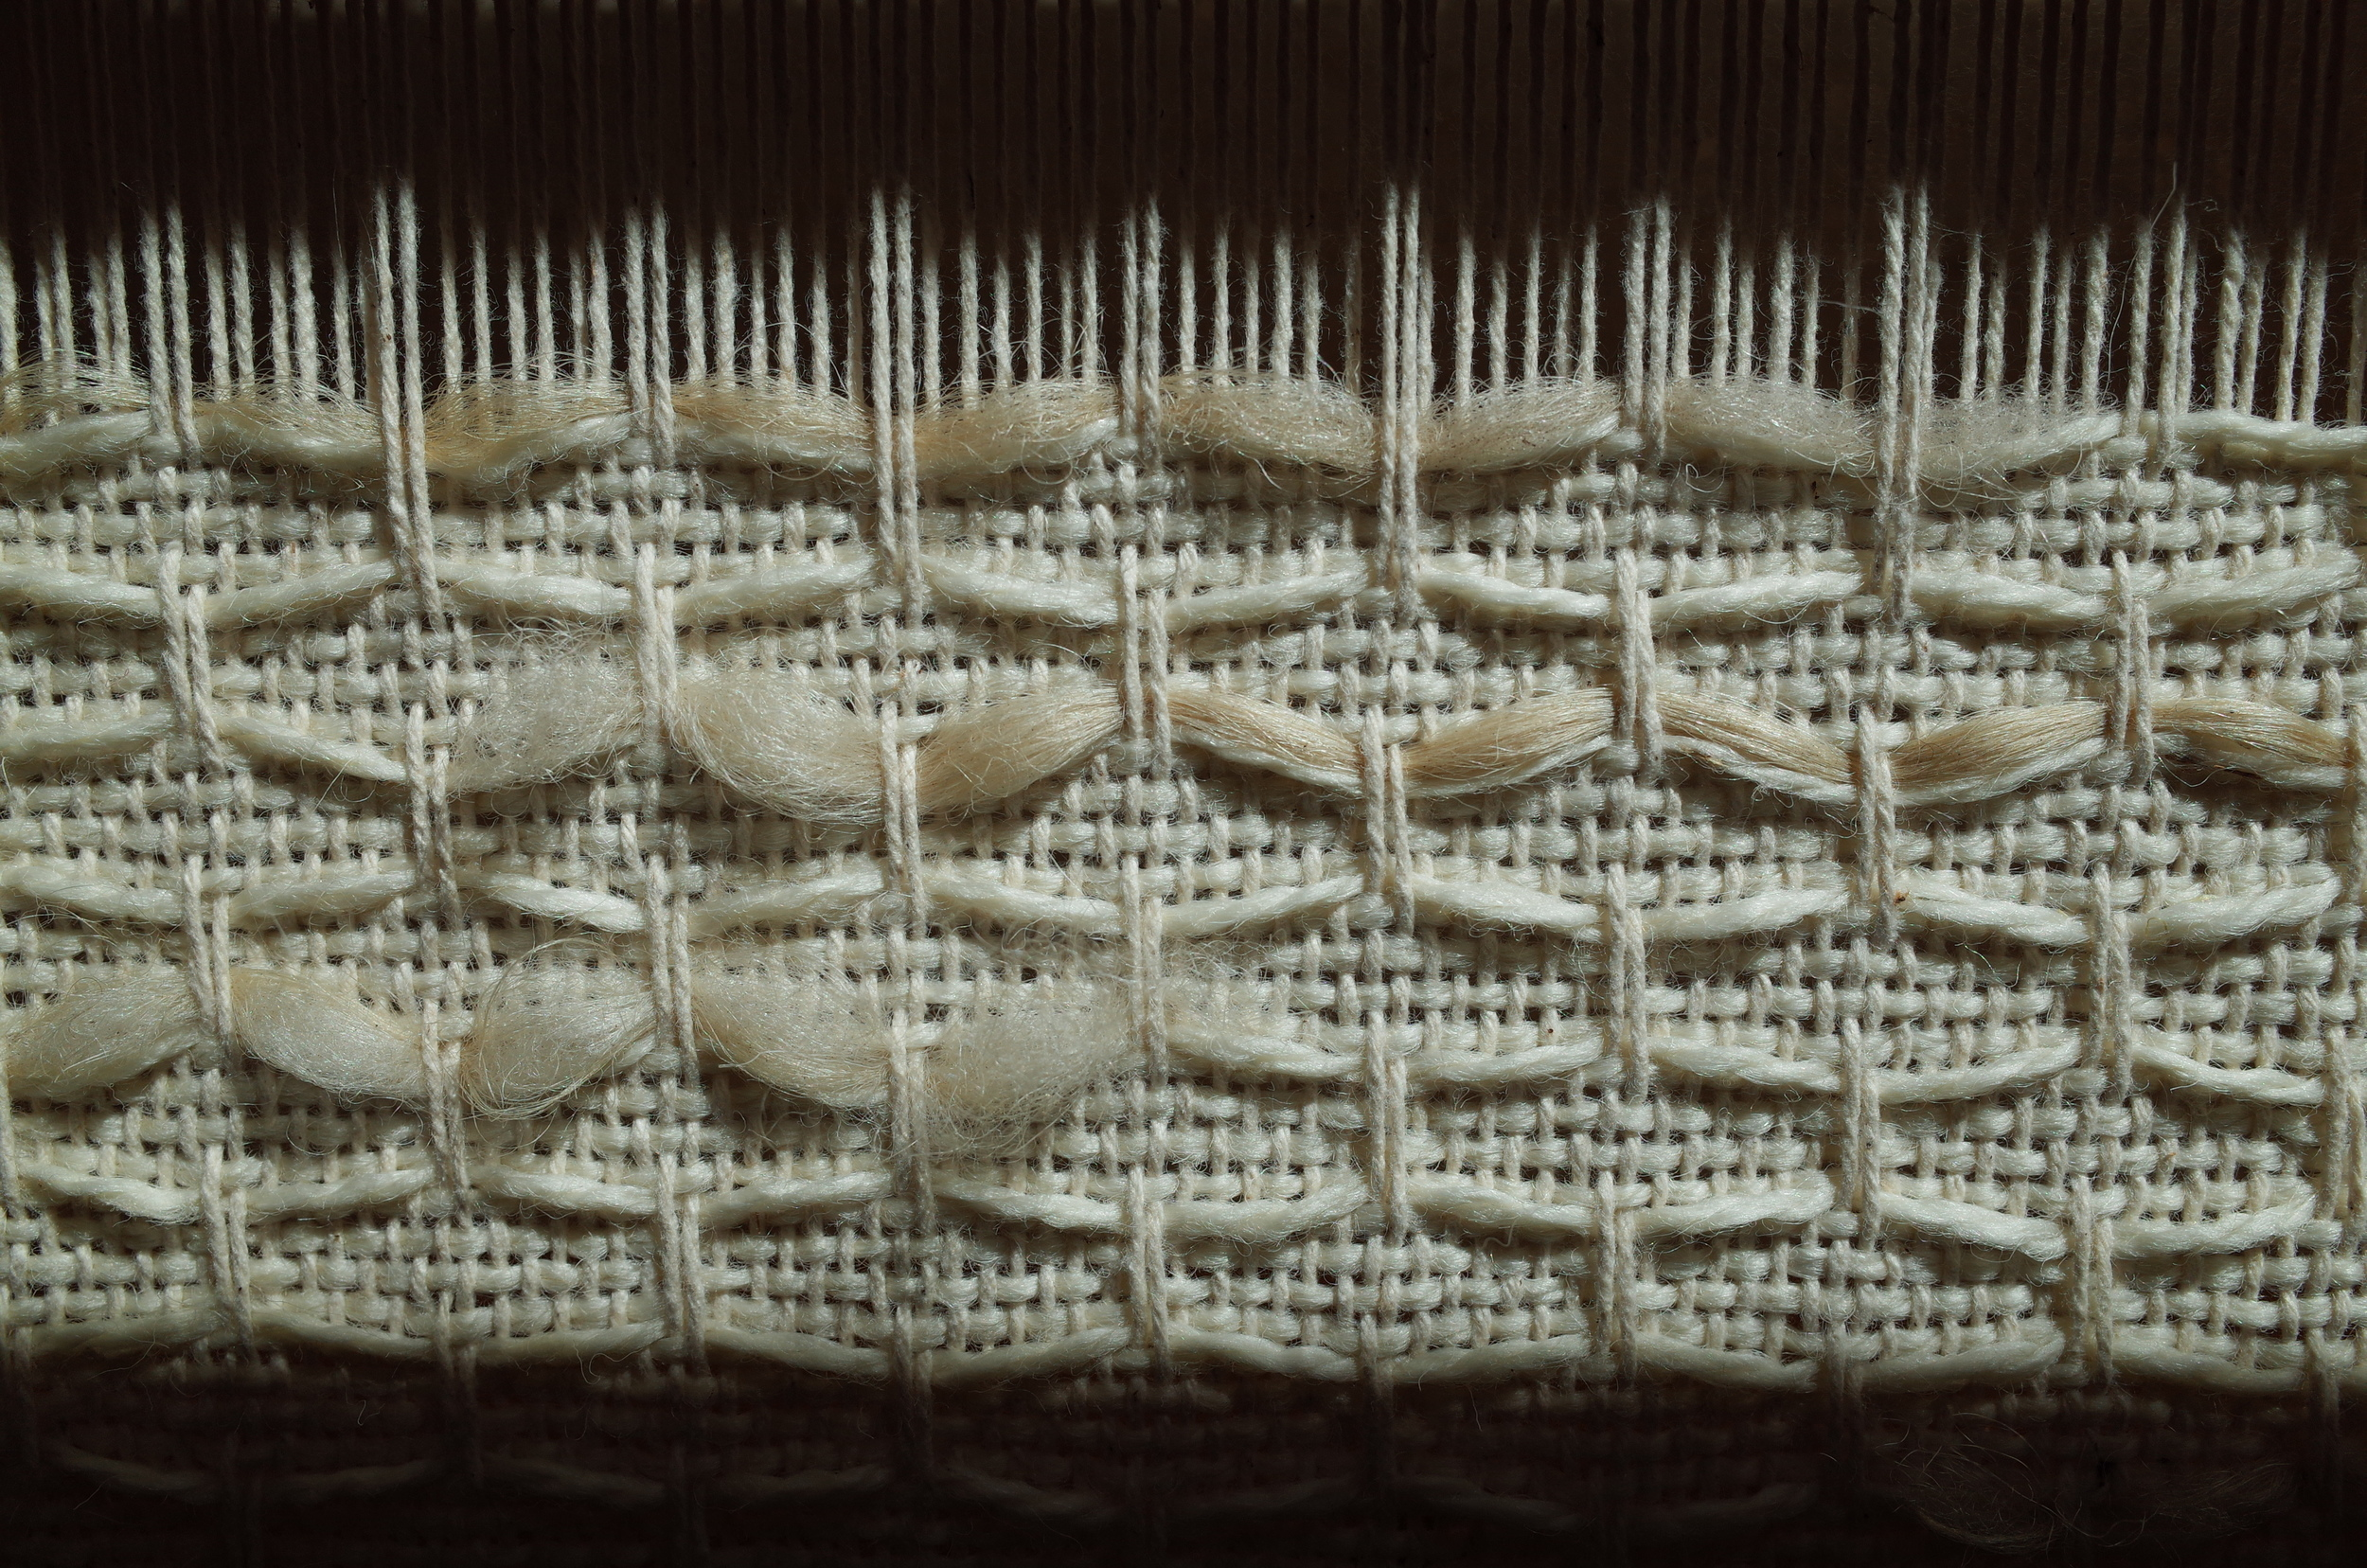 The light emphasizes the the details of the raw fibers.